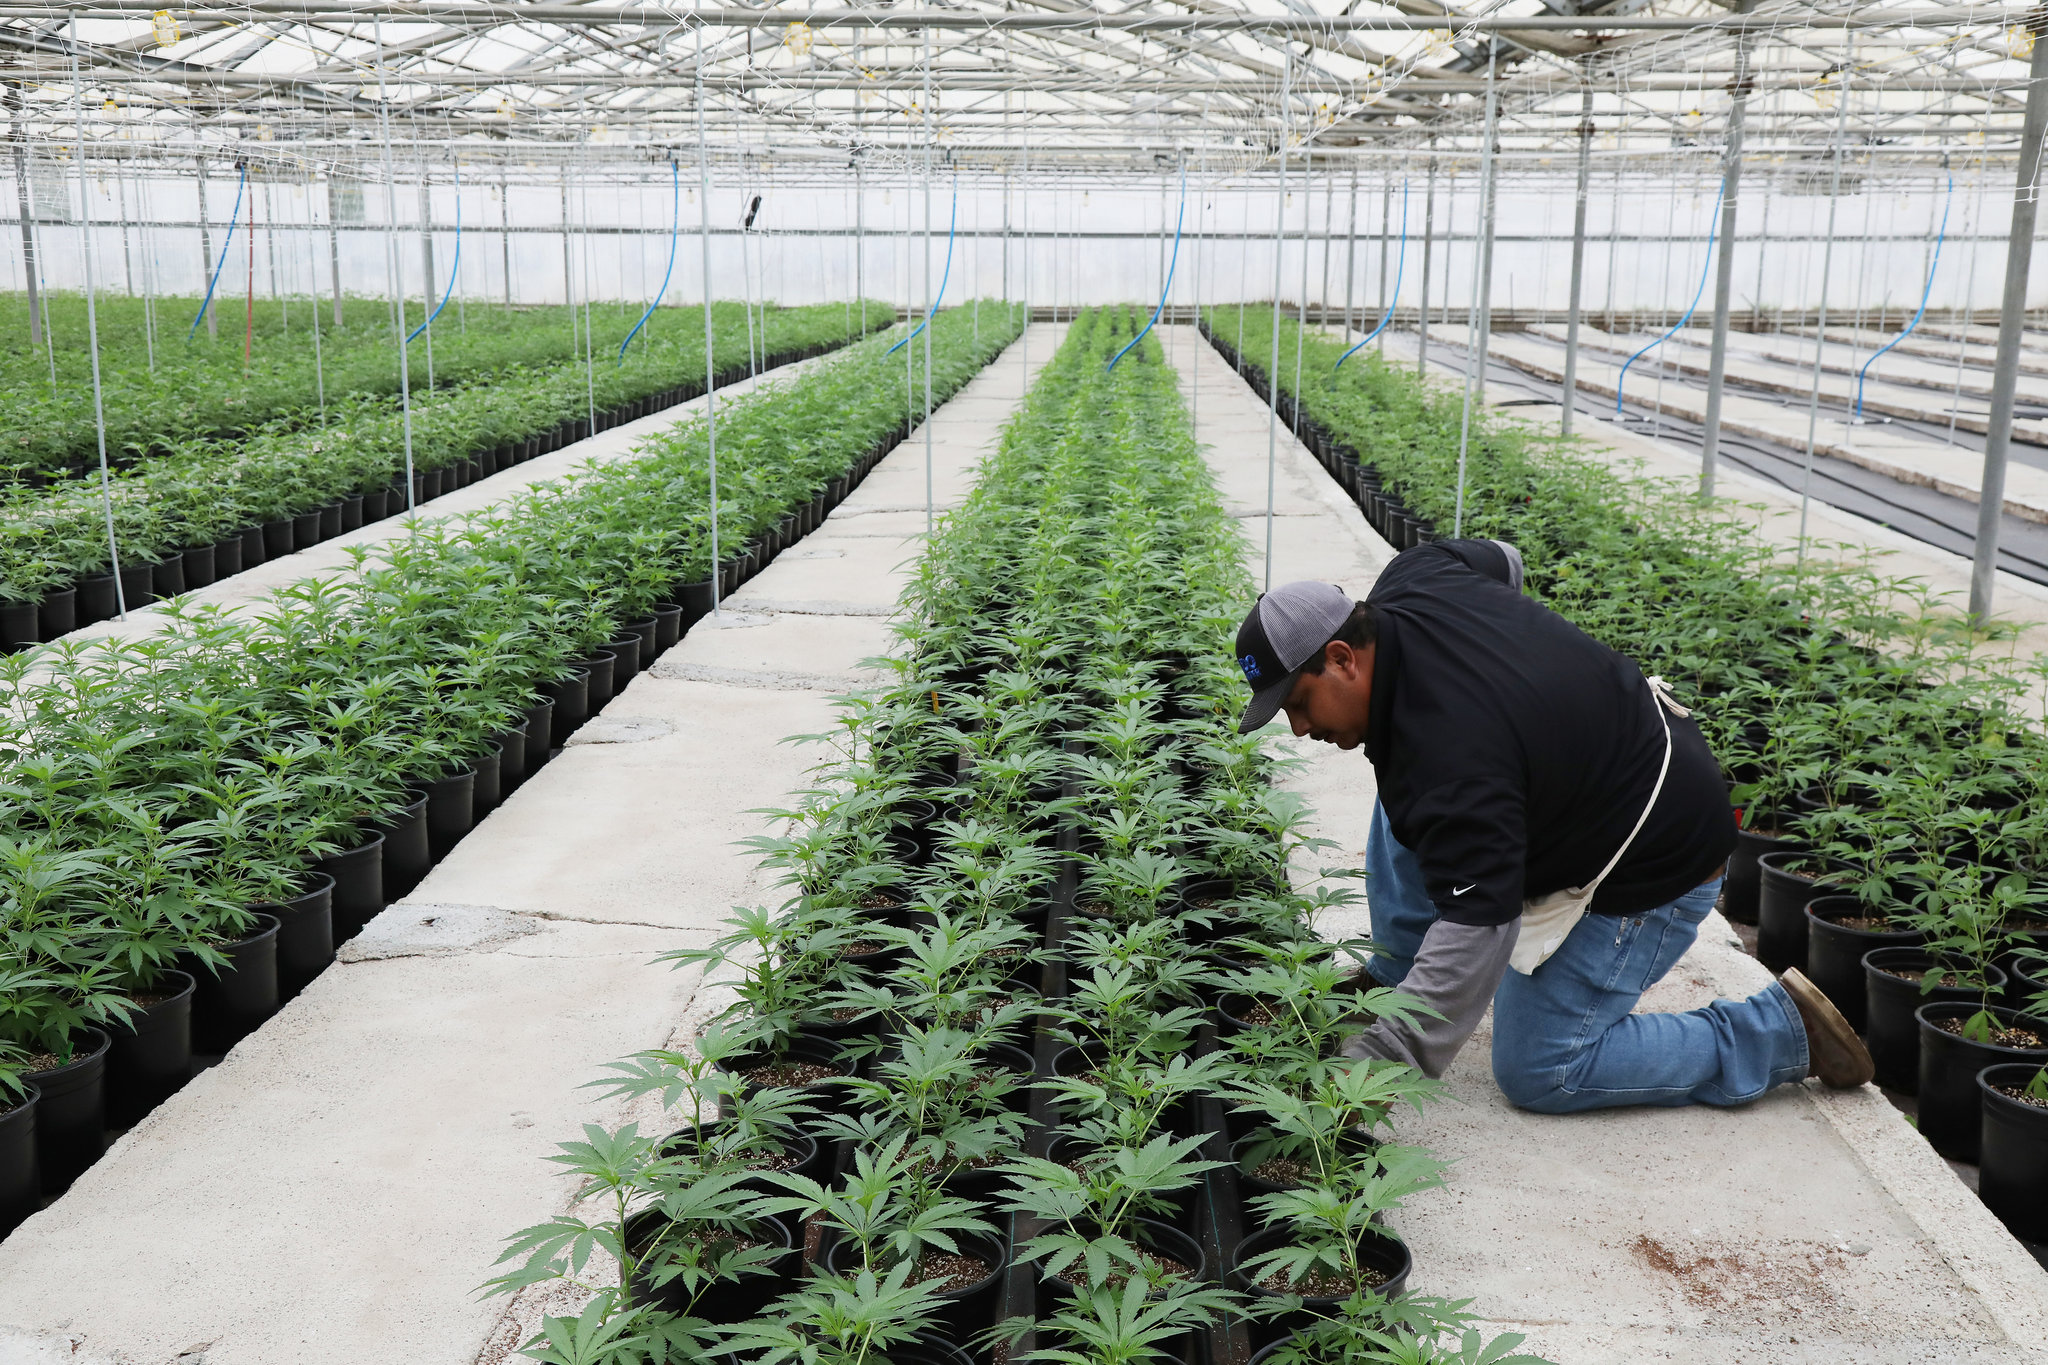 Passion for Growing Pot, From Jail to Cannabis Farm